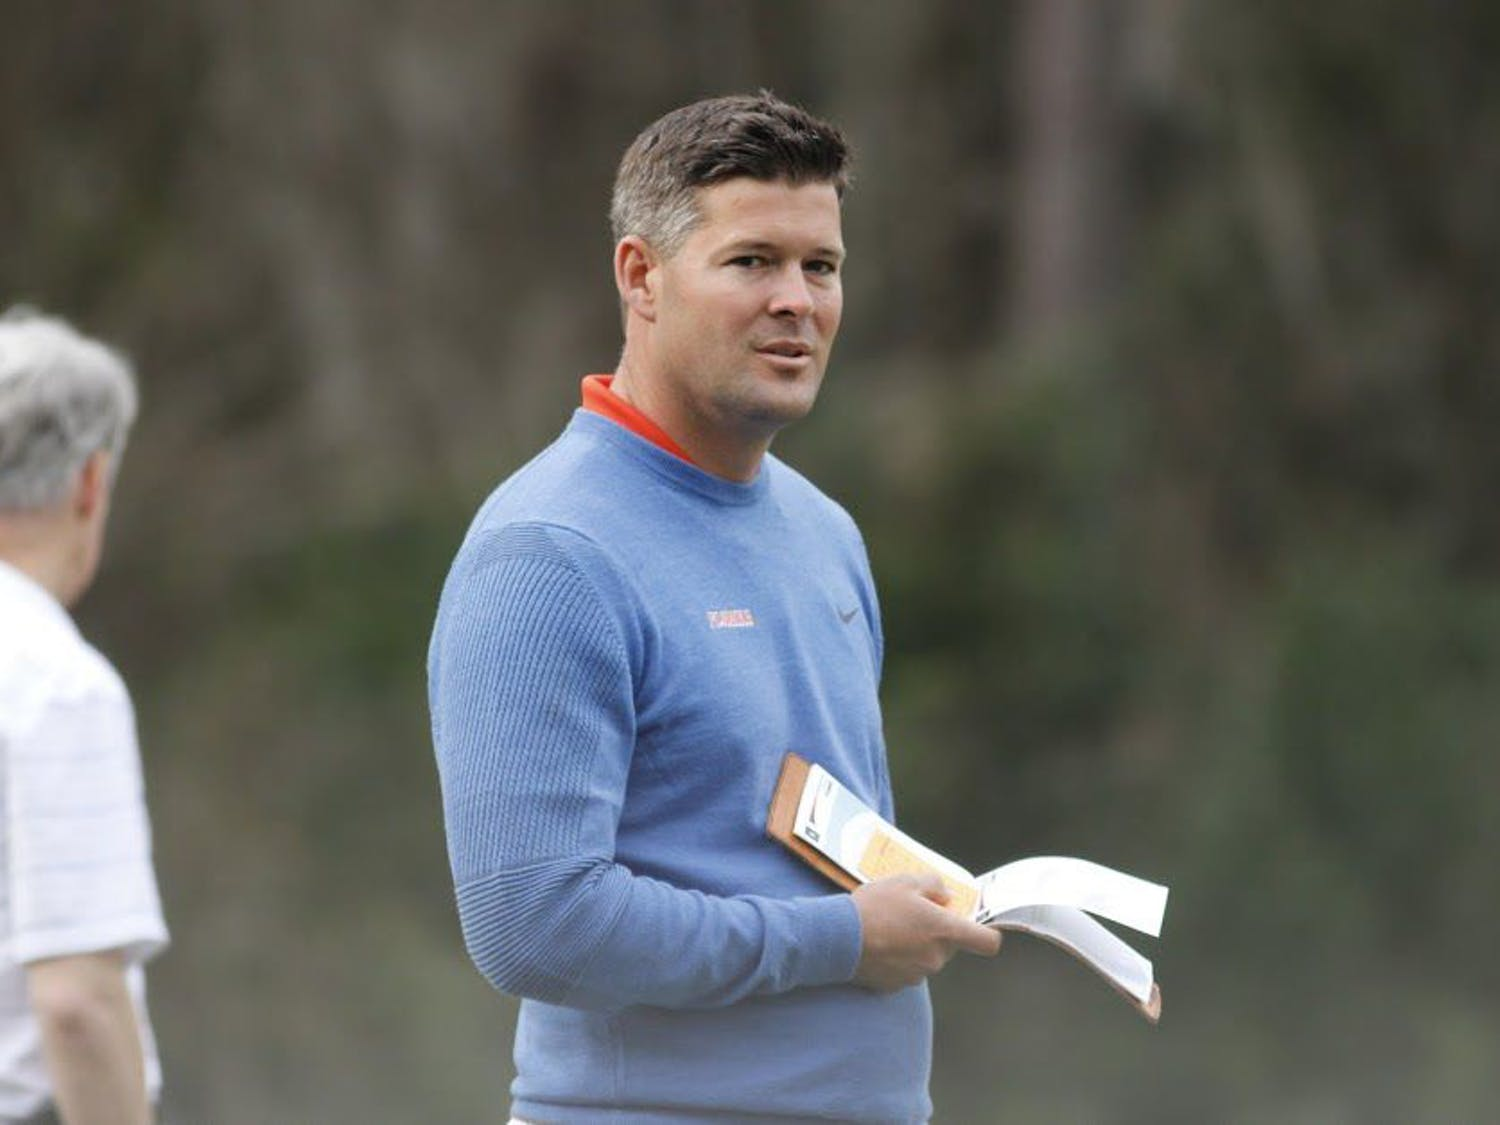 UF head coach JC Deacon holds a scorecard during the 2017 Gator Invitational. Deacon and the Gators head to Scottsdale, Arizona, for the National Championship.